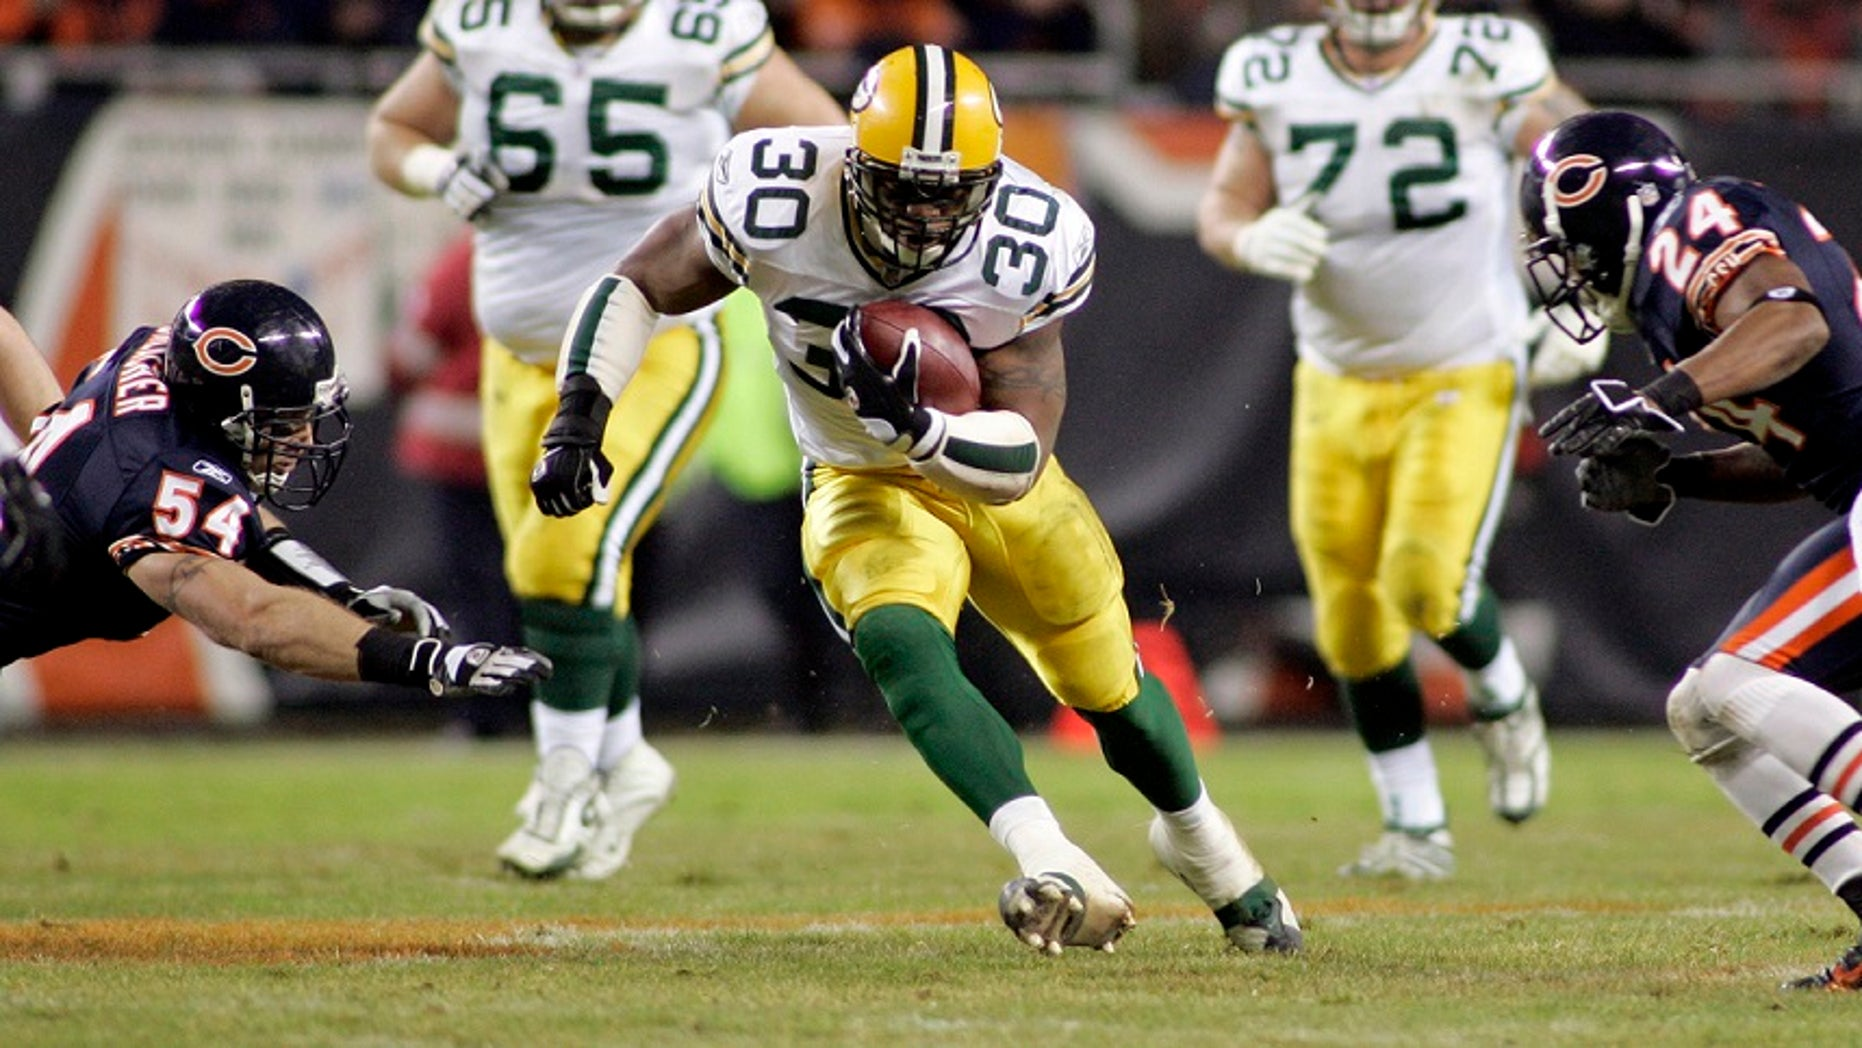 File photo: Green Bay Packers running back Ahman Green (C) runs past Chicago Bears linebacker Brian Urlacher (L) and cornerback Ricky Manning, Jr. in the first quarter of their NFL game in Chicago December 31, 2006. (REUTERS/Frank Polich)